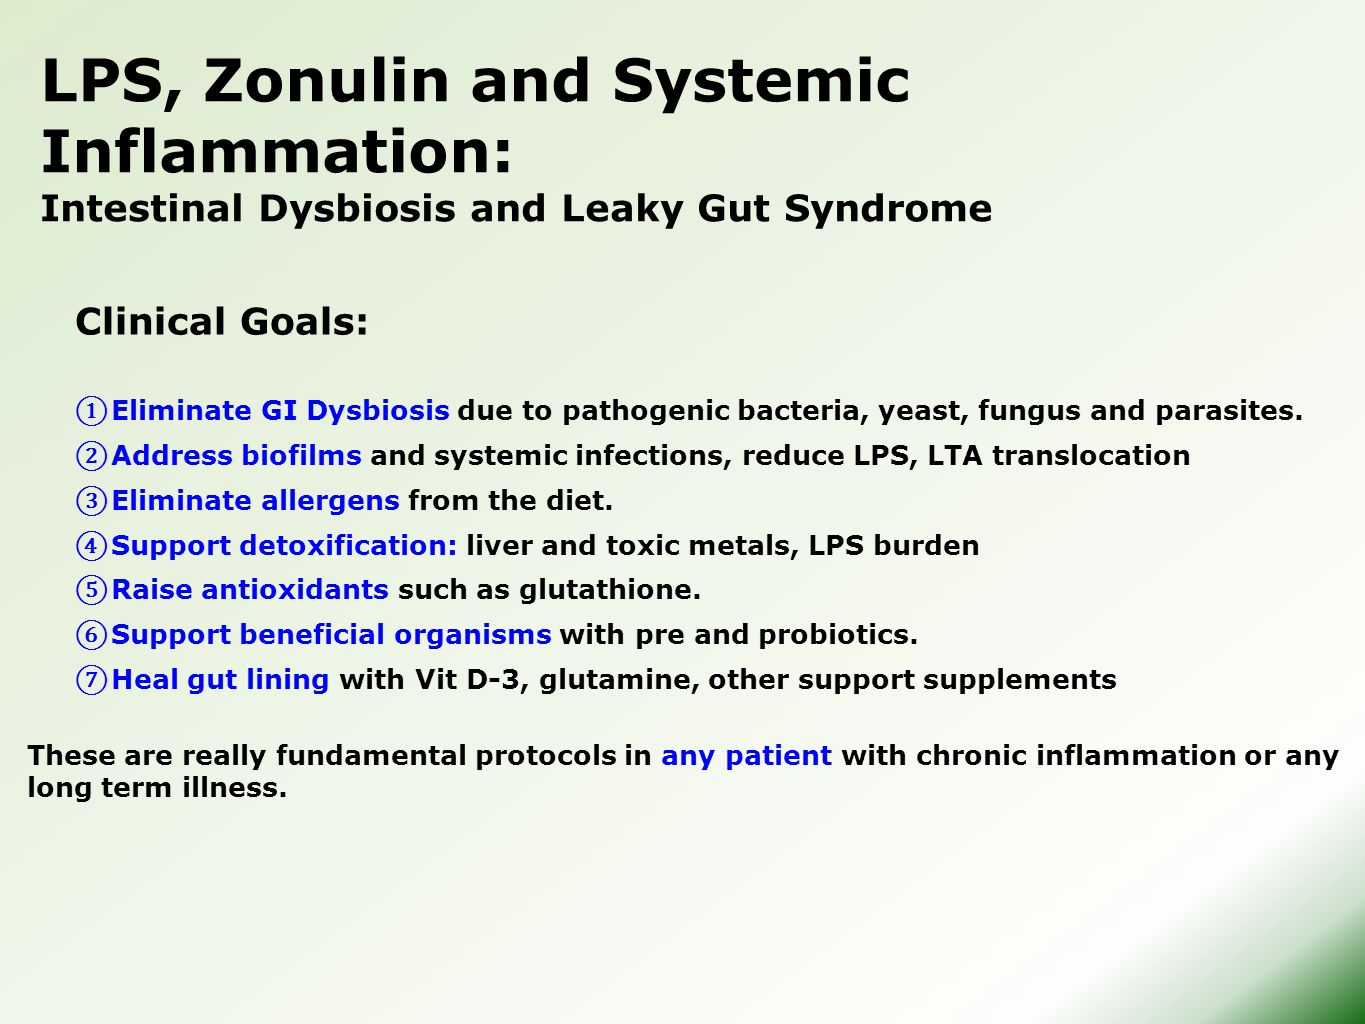 LPS, Zonulin and Systemic Inflammation: Intestinal Dysbiosis and Leaky Gut Syndrome Clinical Goals: ① Eliminate GI Dysbiosis due to pathogenic bacteri